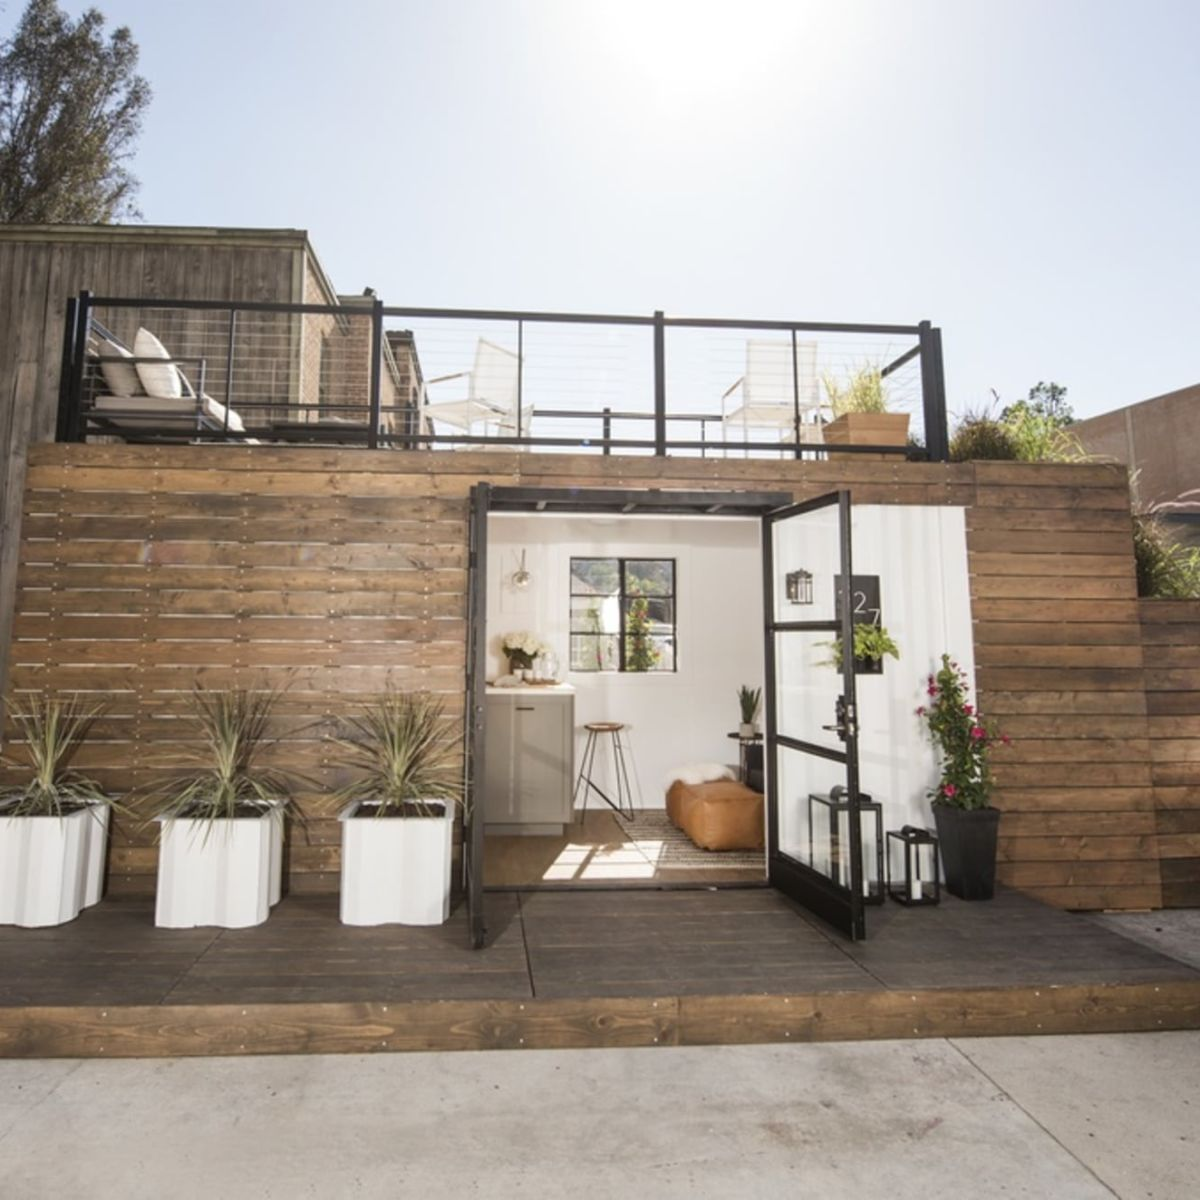 Long Beach Beach Houses: Shipping Container Tiny House